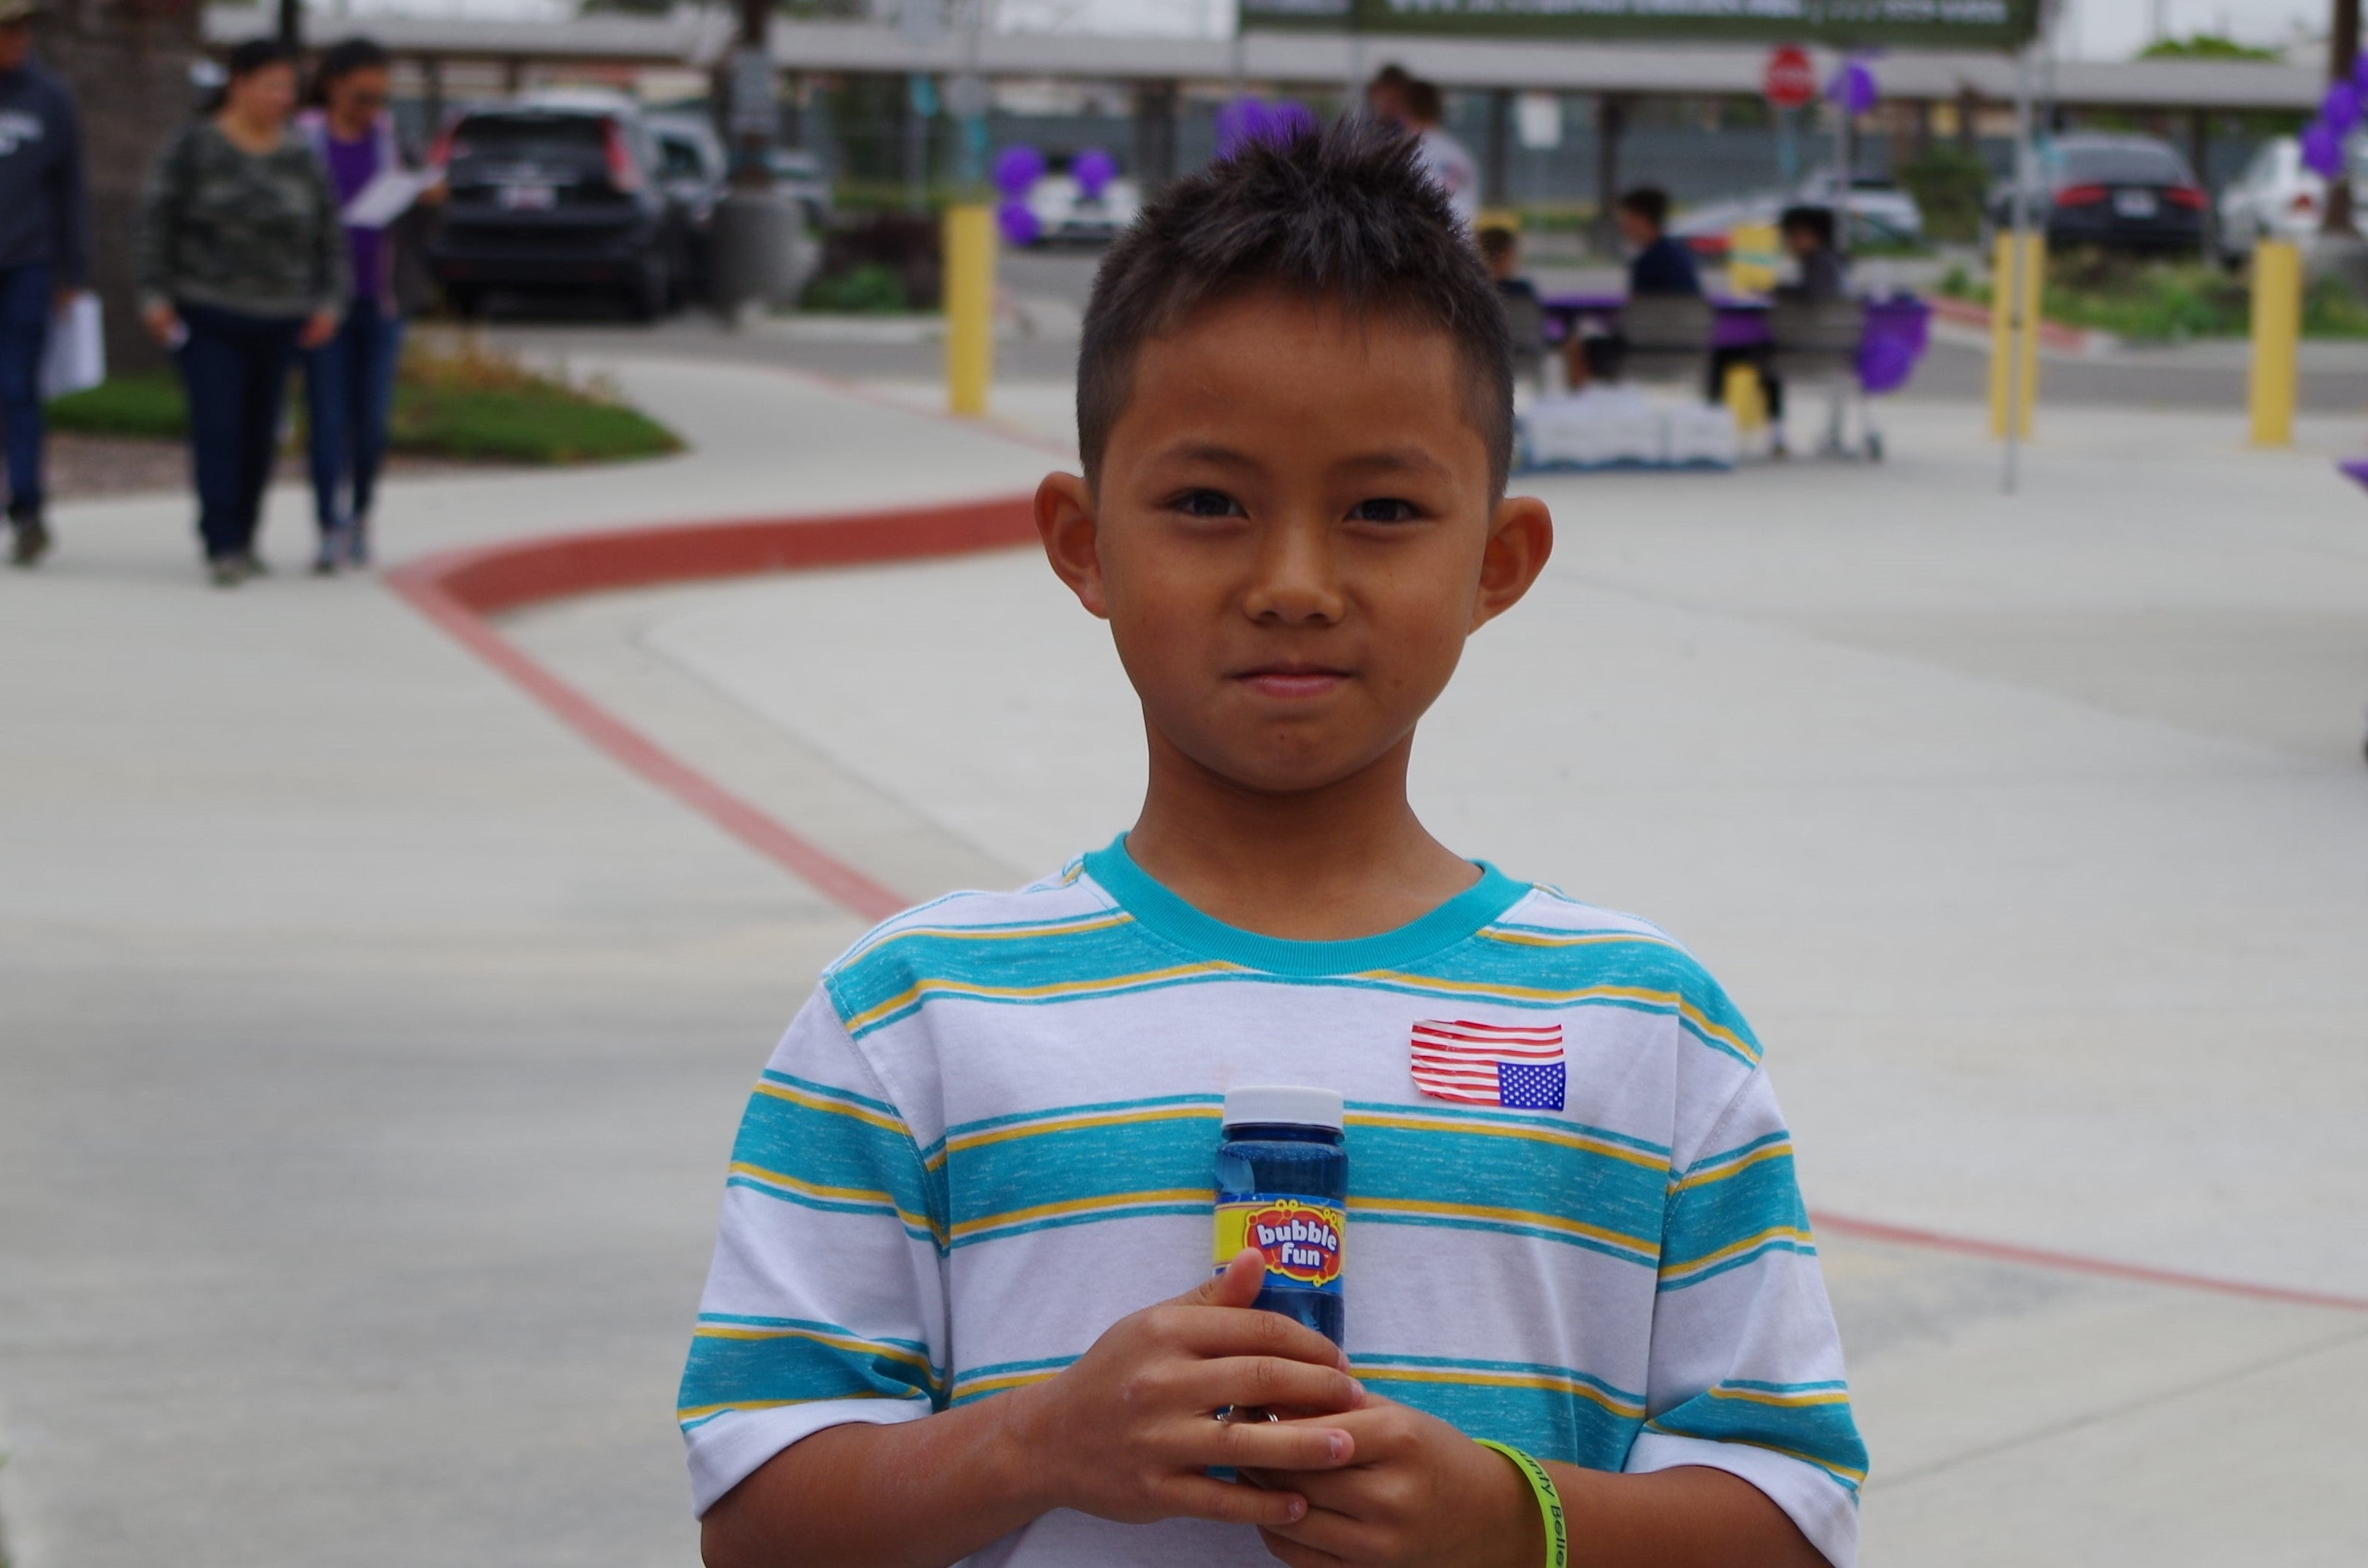 A child posing with a bottle labeled bottle fun